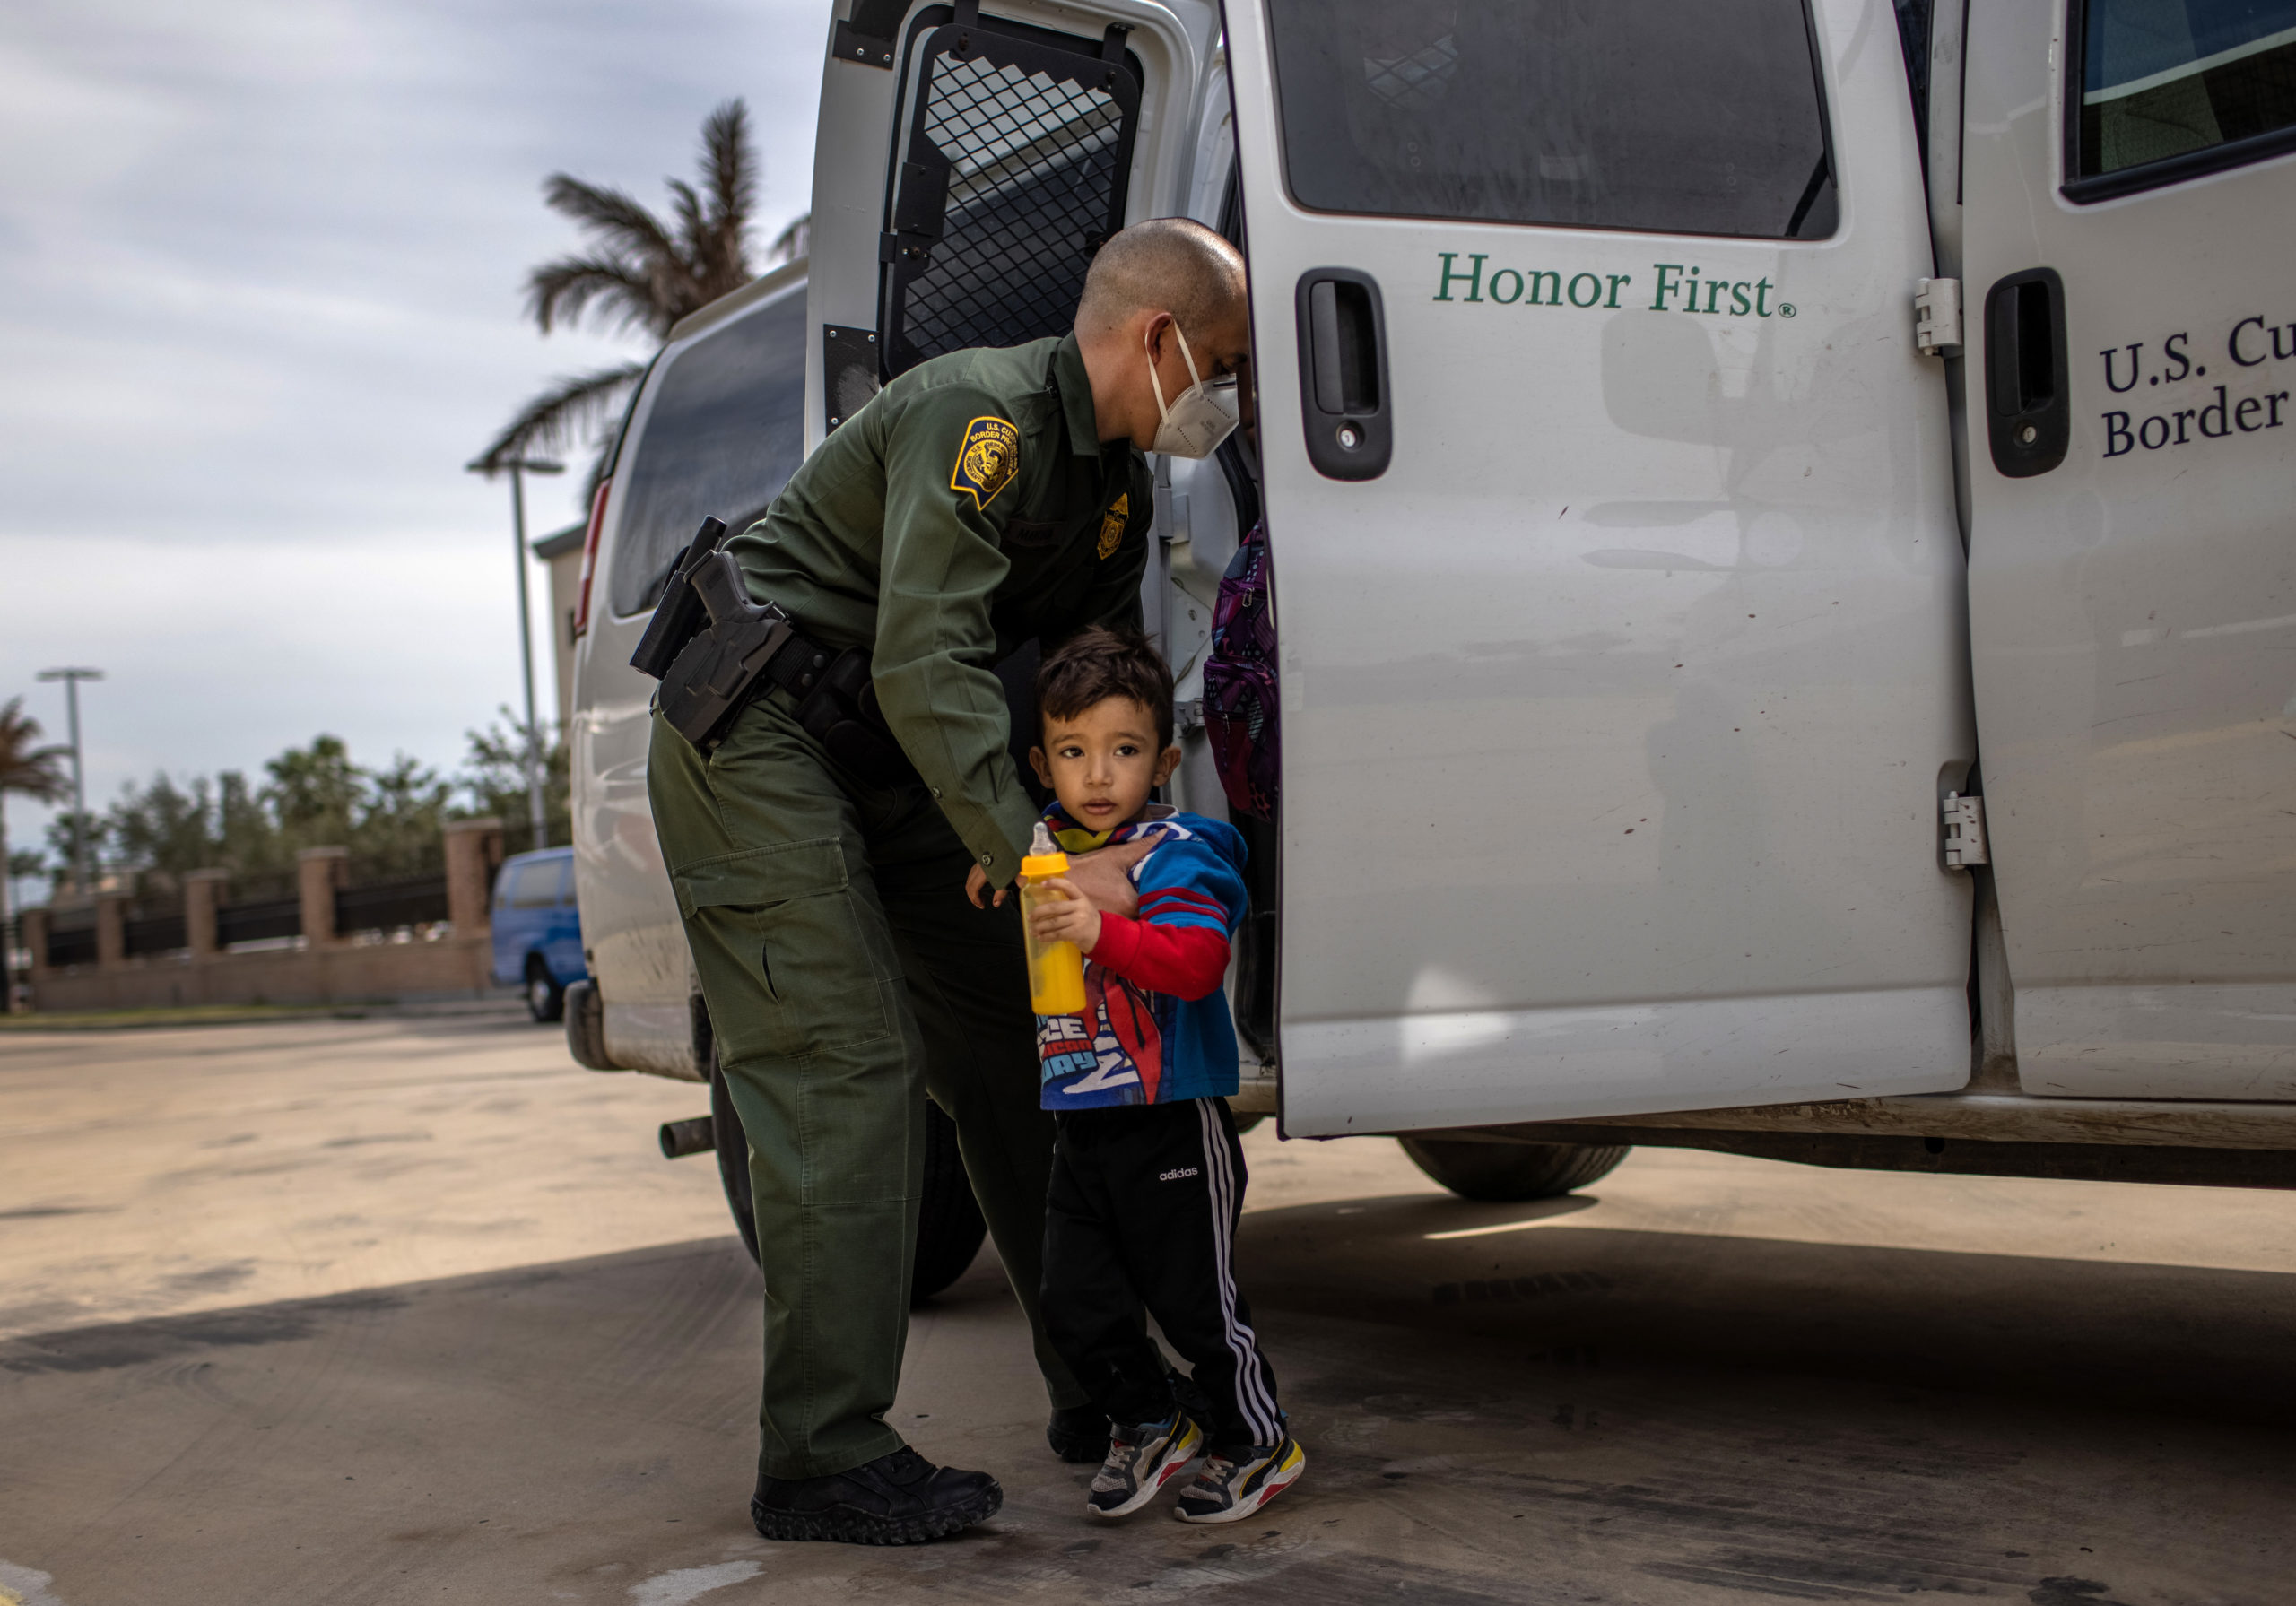 BROWNSVILLE, TEXAS - FEBRUARY 26: A U.S. Border Patrol agent delivers a young asylum seeker and his family to a bus station on February 26, 2021 in Brownsville, Texas. U.S. immigration authorities are now releasing many asylum seeking families after detaining them while crossing the U.S.-Mexico border. The immigrant families are then free to travel to destinations throughout the U.S. while awaiting asylum hearings. (Photo by John Moore/Getty Images)